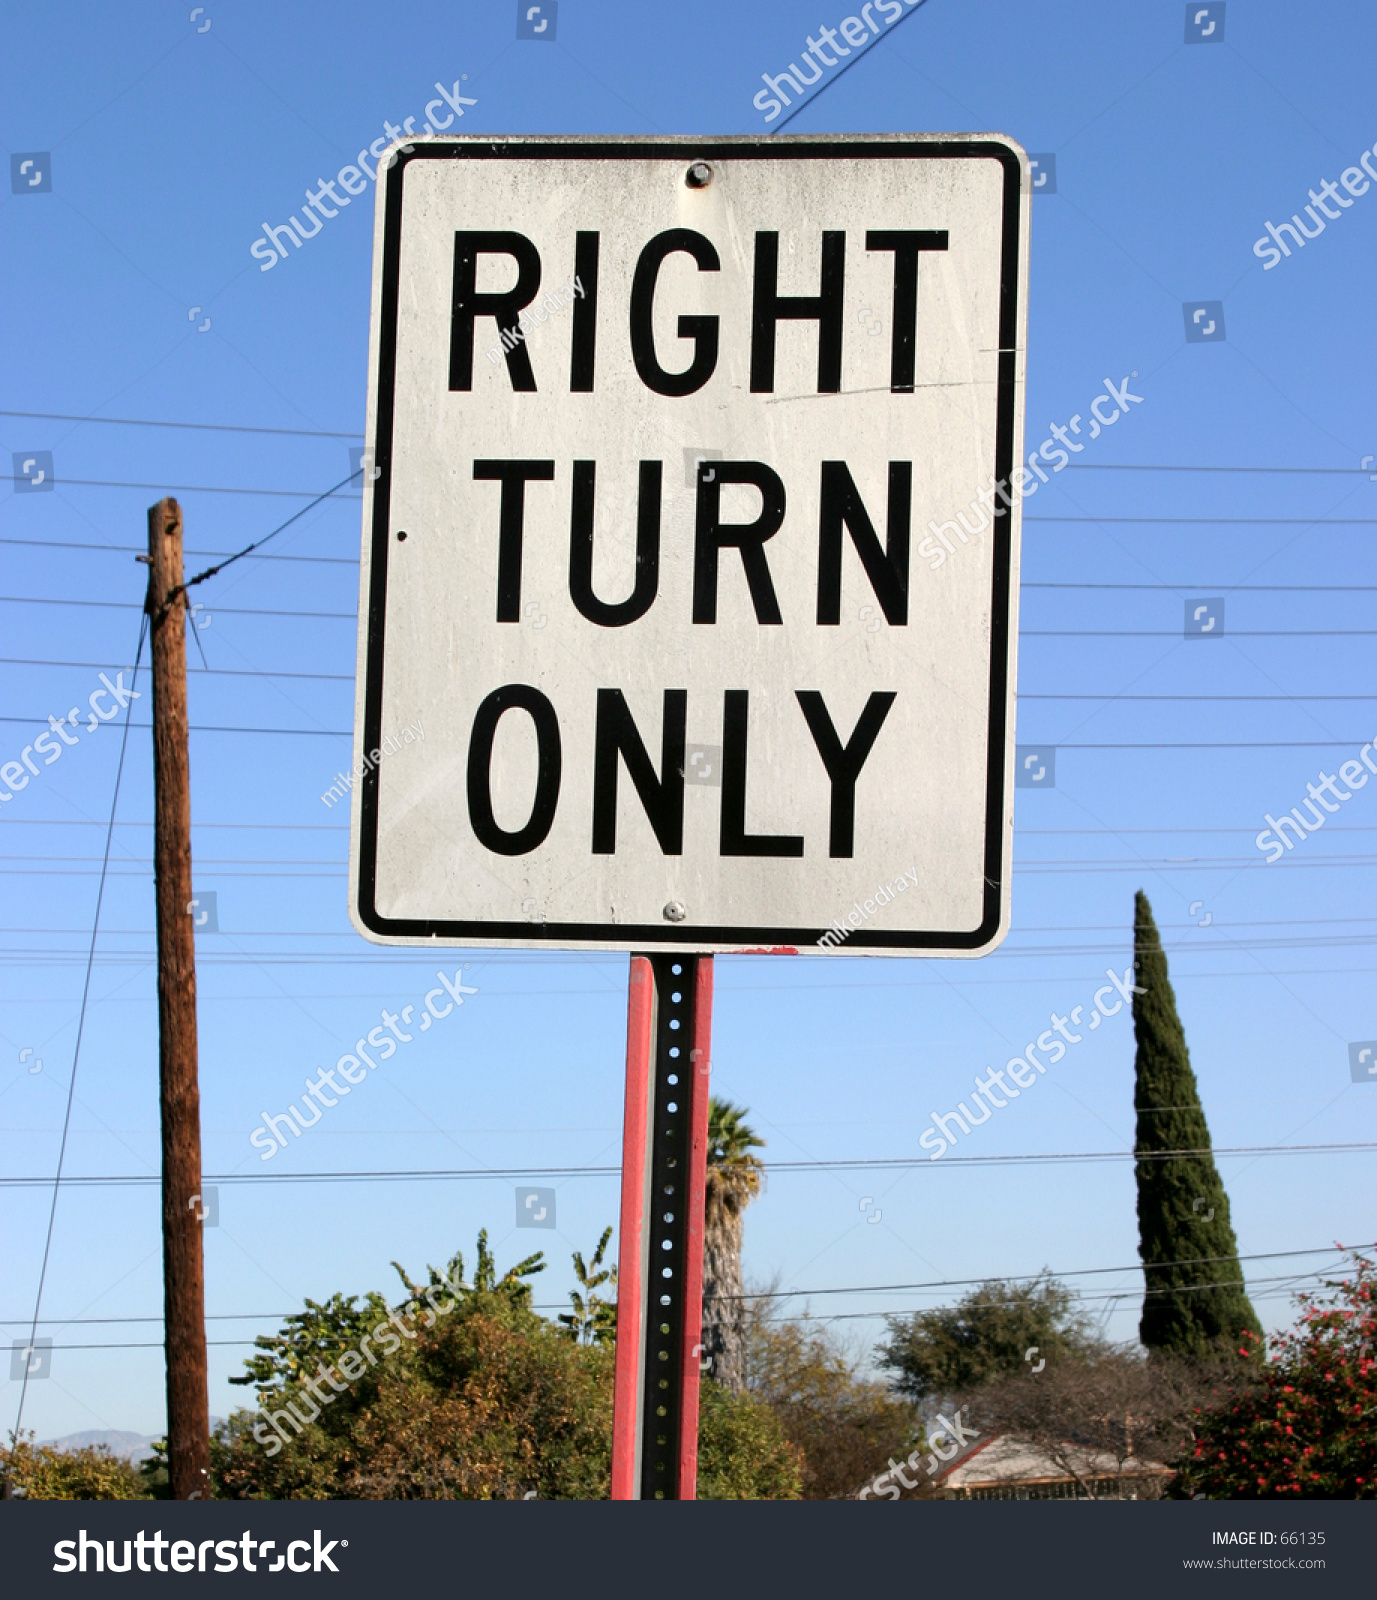 right turn only sign stock photo 66135 shutterstock